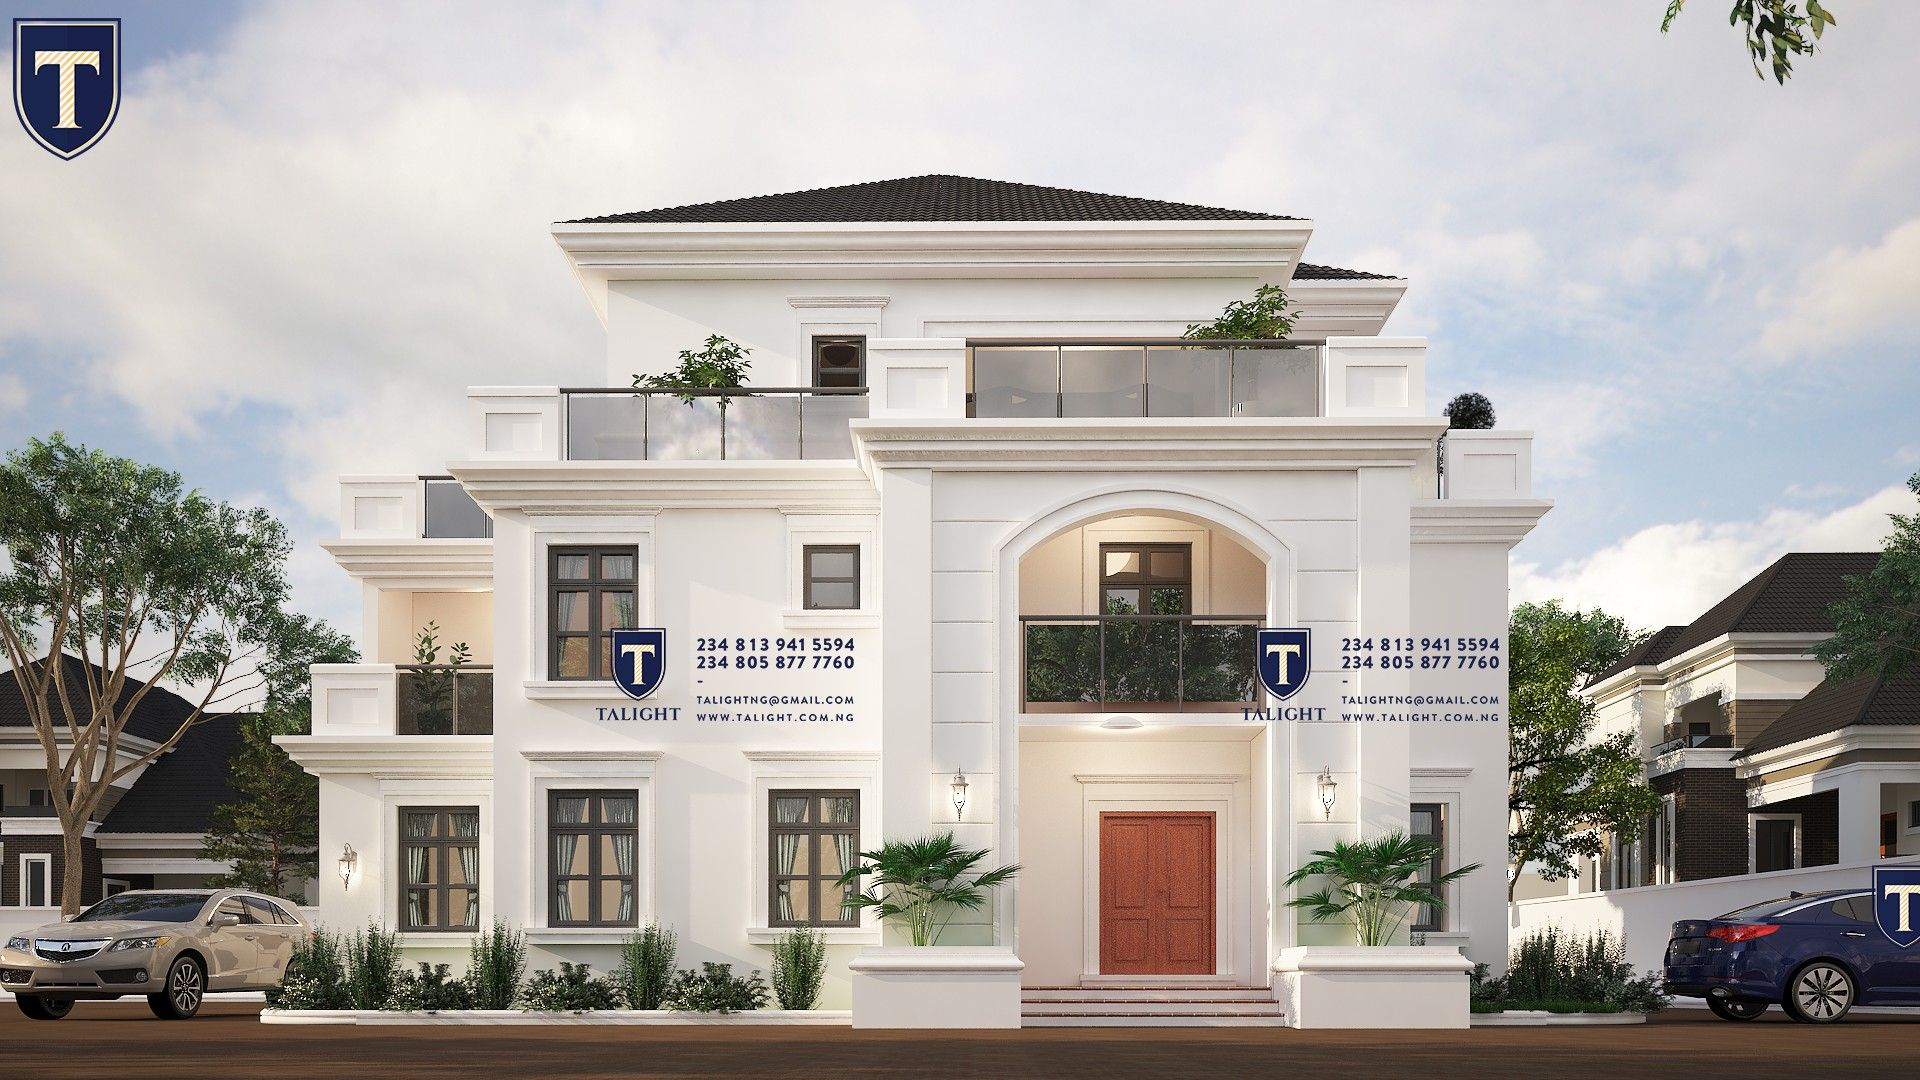 Six bedroom duplex in Abuja, Nigeria Contact us on your ...